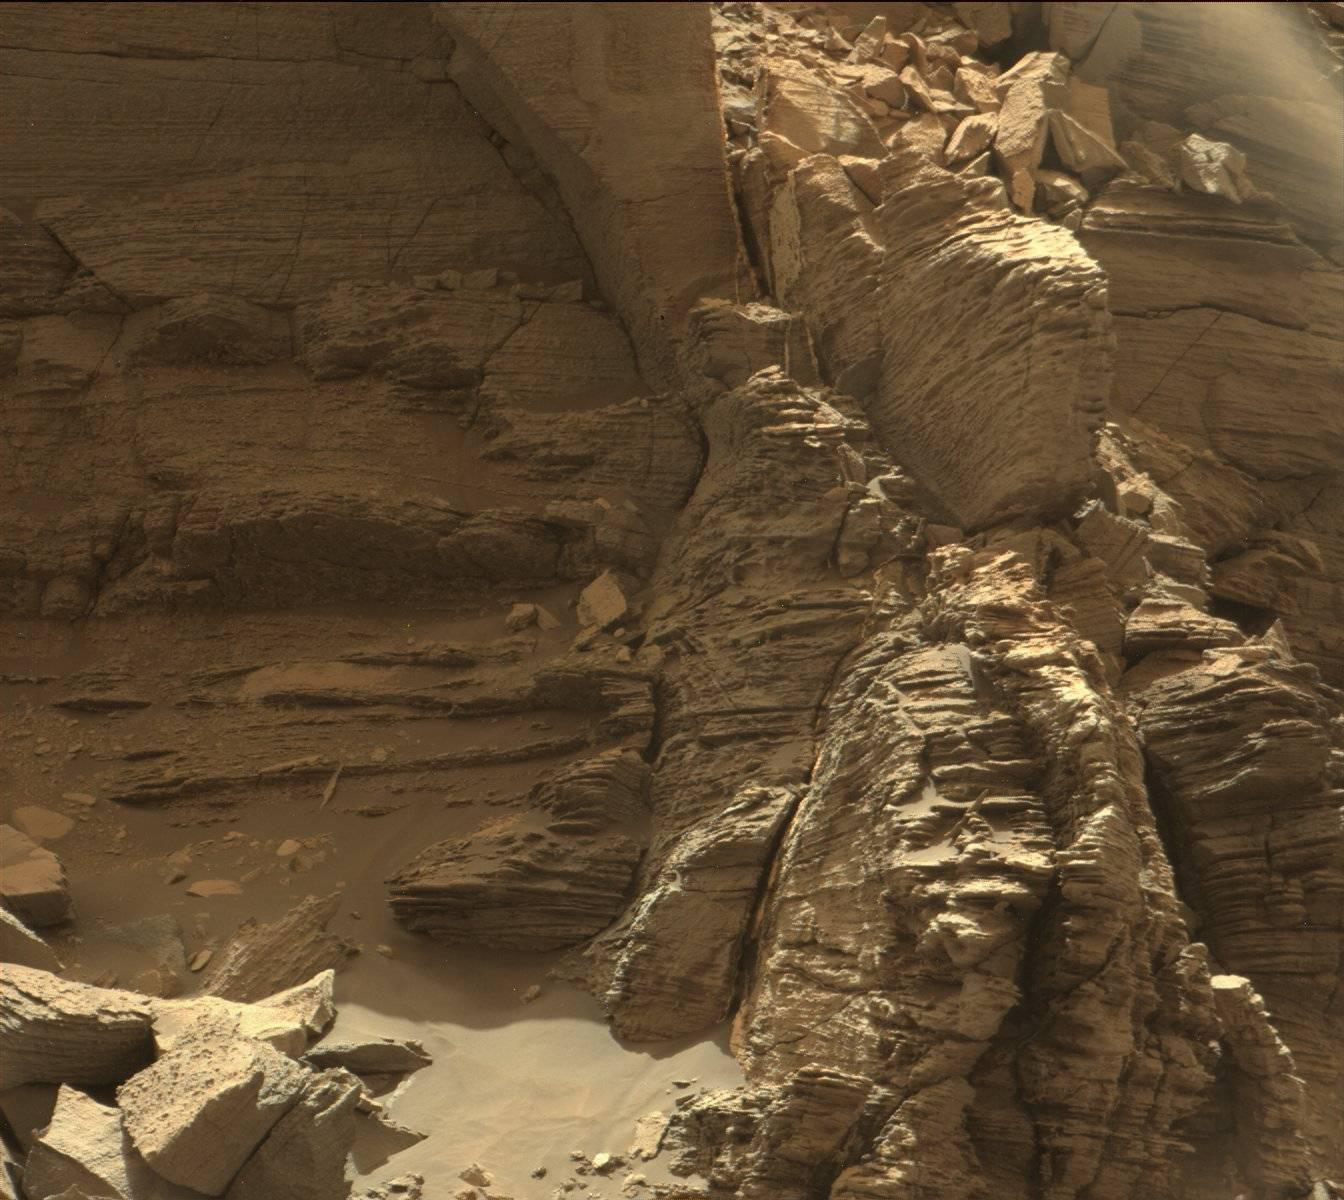 "PICTURE SHOWS: This view from the Mast Camera (Mastcam) in NASA's Curiosity Mars rover shows an outcrop with finely layered rocks within the ""Murray Buttes"" region on lower Mount Sharp. The image was taken on Sept. 8, 2016.  ...   Prepare to have your mind blown - NASA has collected together a treasure trove of more than 140,000 images, videos and audio files.  The stunning collection consolidates imagery spread across more than 60 collections into one searchable location, called the NASA Image and Video Library website.  Cover Images have chosen a gallery of the most popular images currently on the website, which include the first American astronaut to walk in space and a self-portrait of NASA's Curiosity Mars rover.  The portal allows users to search and discover content from across the agency's many missions in aeronautics, astrophysics, Earth science, human spaceflight, and more.  The library is not comprehensive, but rather provides the best of what NASA makes available from a single point of presence on the web. Additionally, it is a living website, where new and archival images, video and audio files continually will be added.  When: 09 Sep 2016"